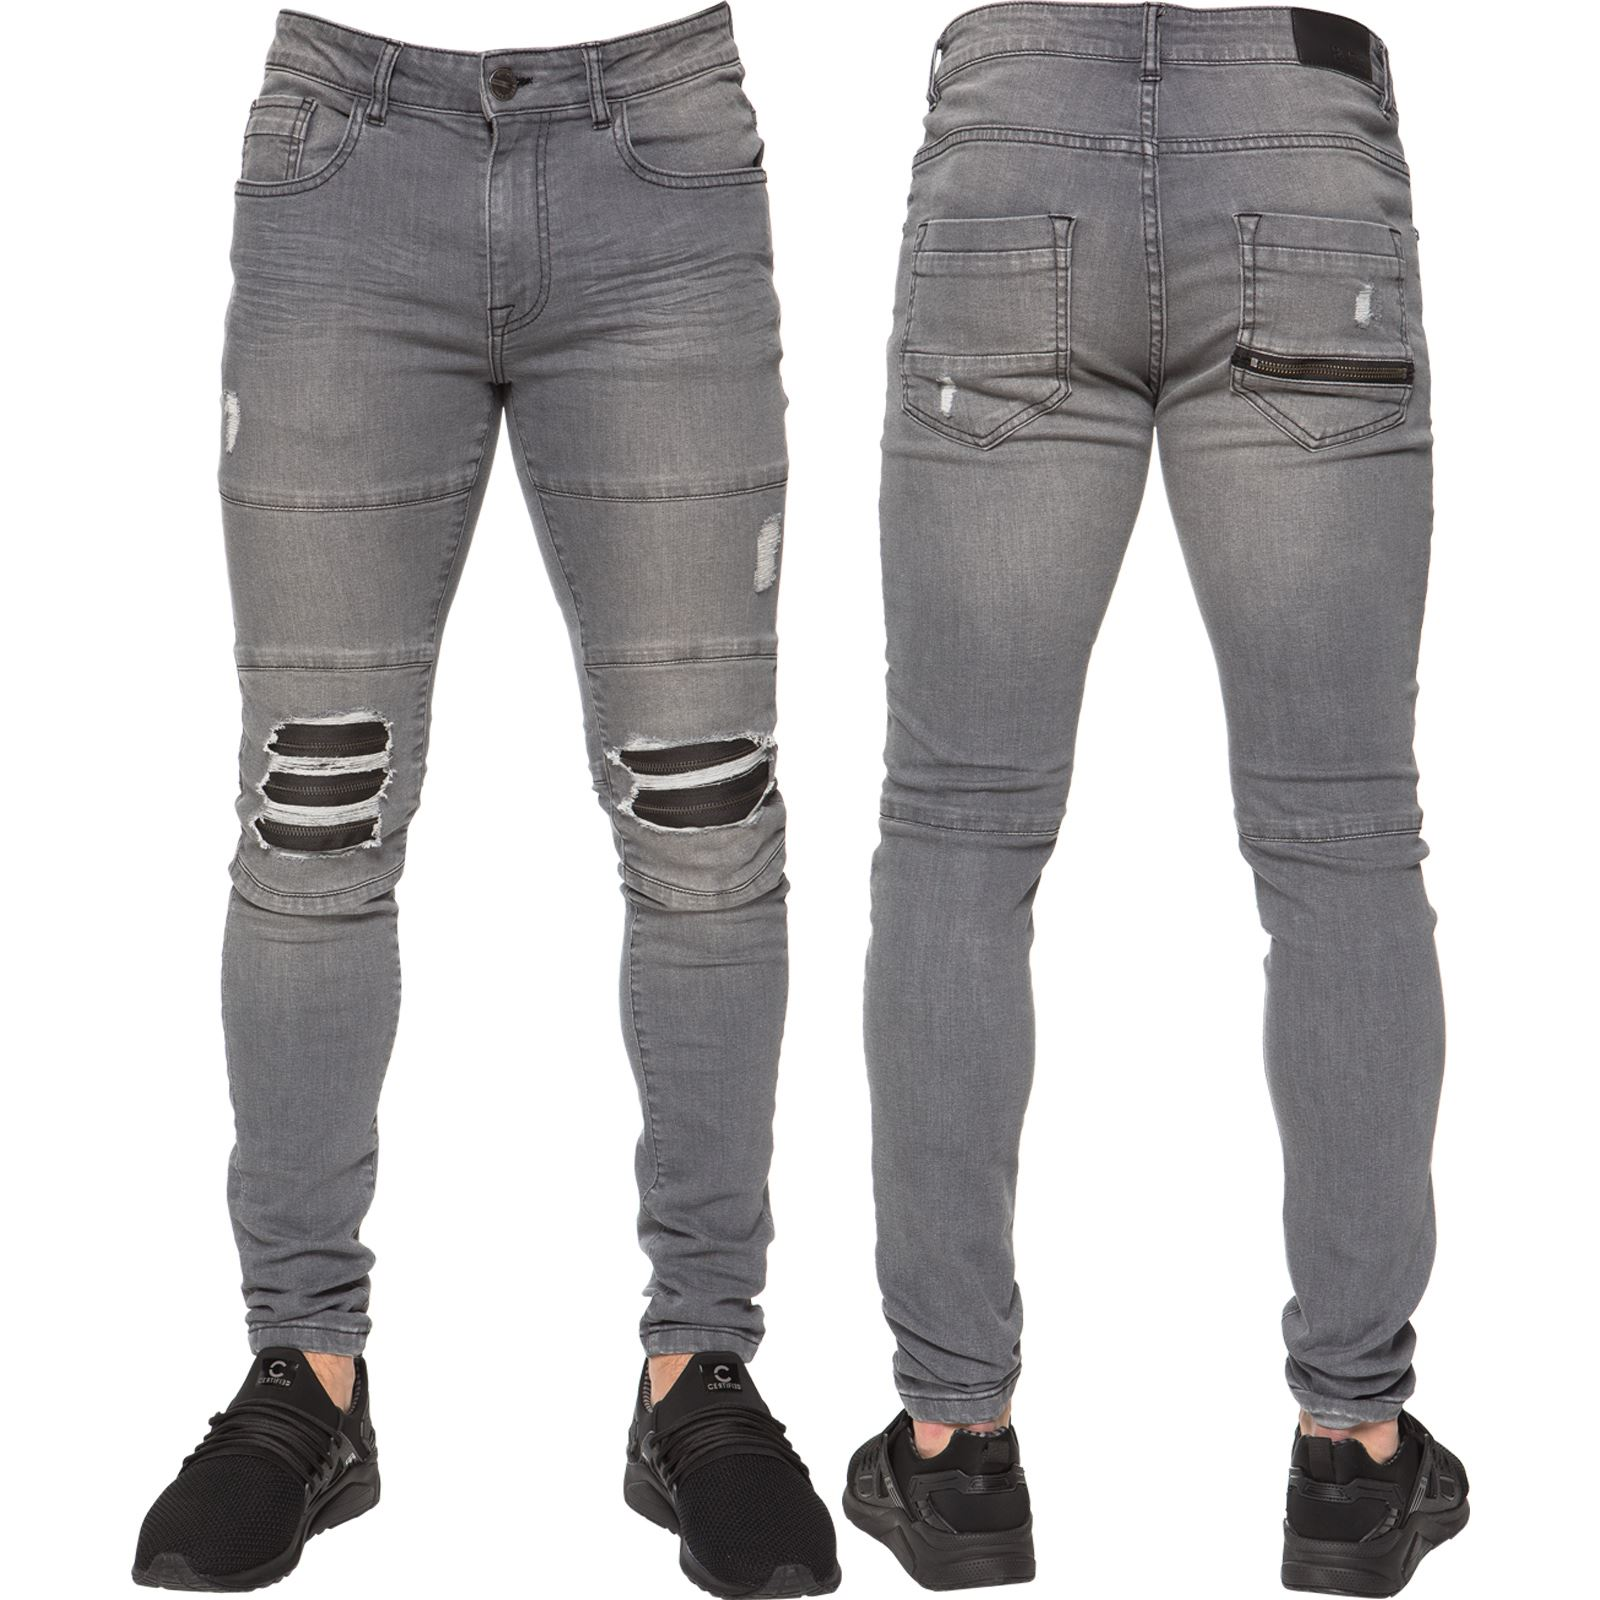 Enzo Designer Mens Skinny Ripped Jeans Super Stretch Slim Denim